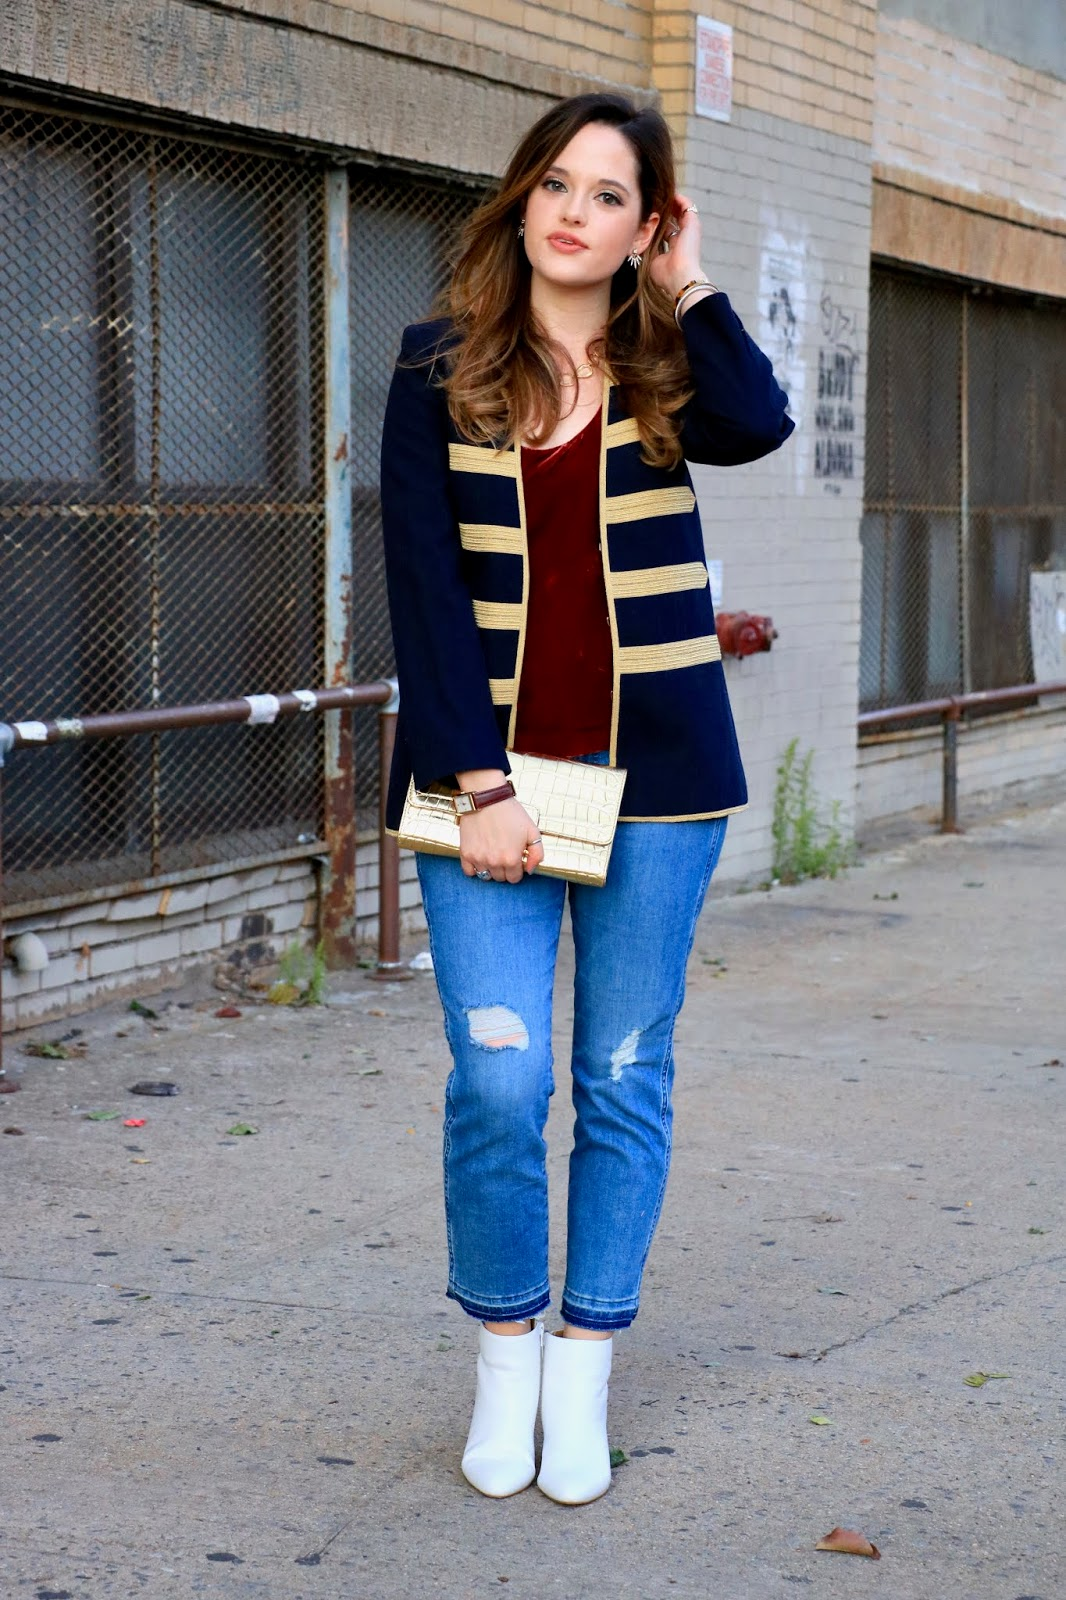 Nyc fashion blogger Kathleen Harper's boyfriend jeans outfit ideas